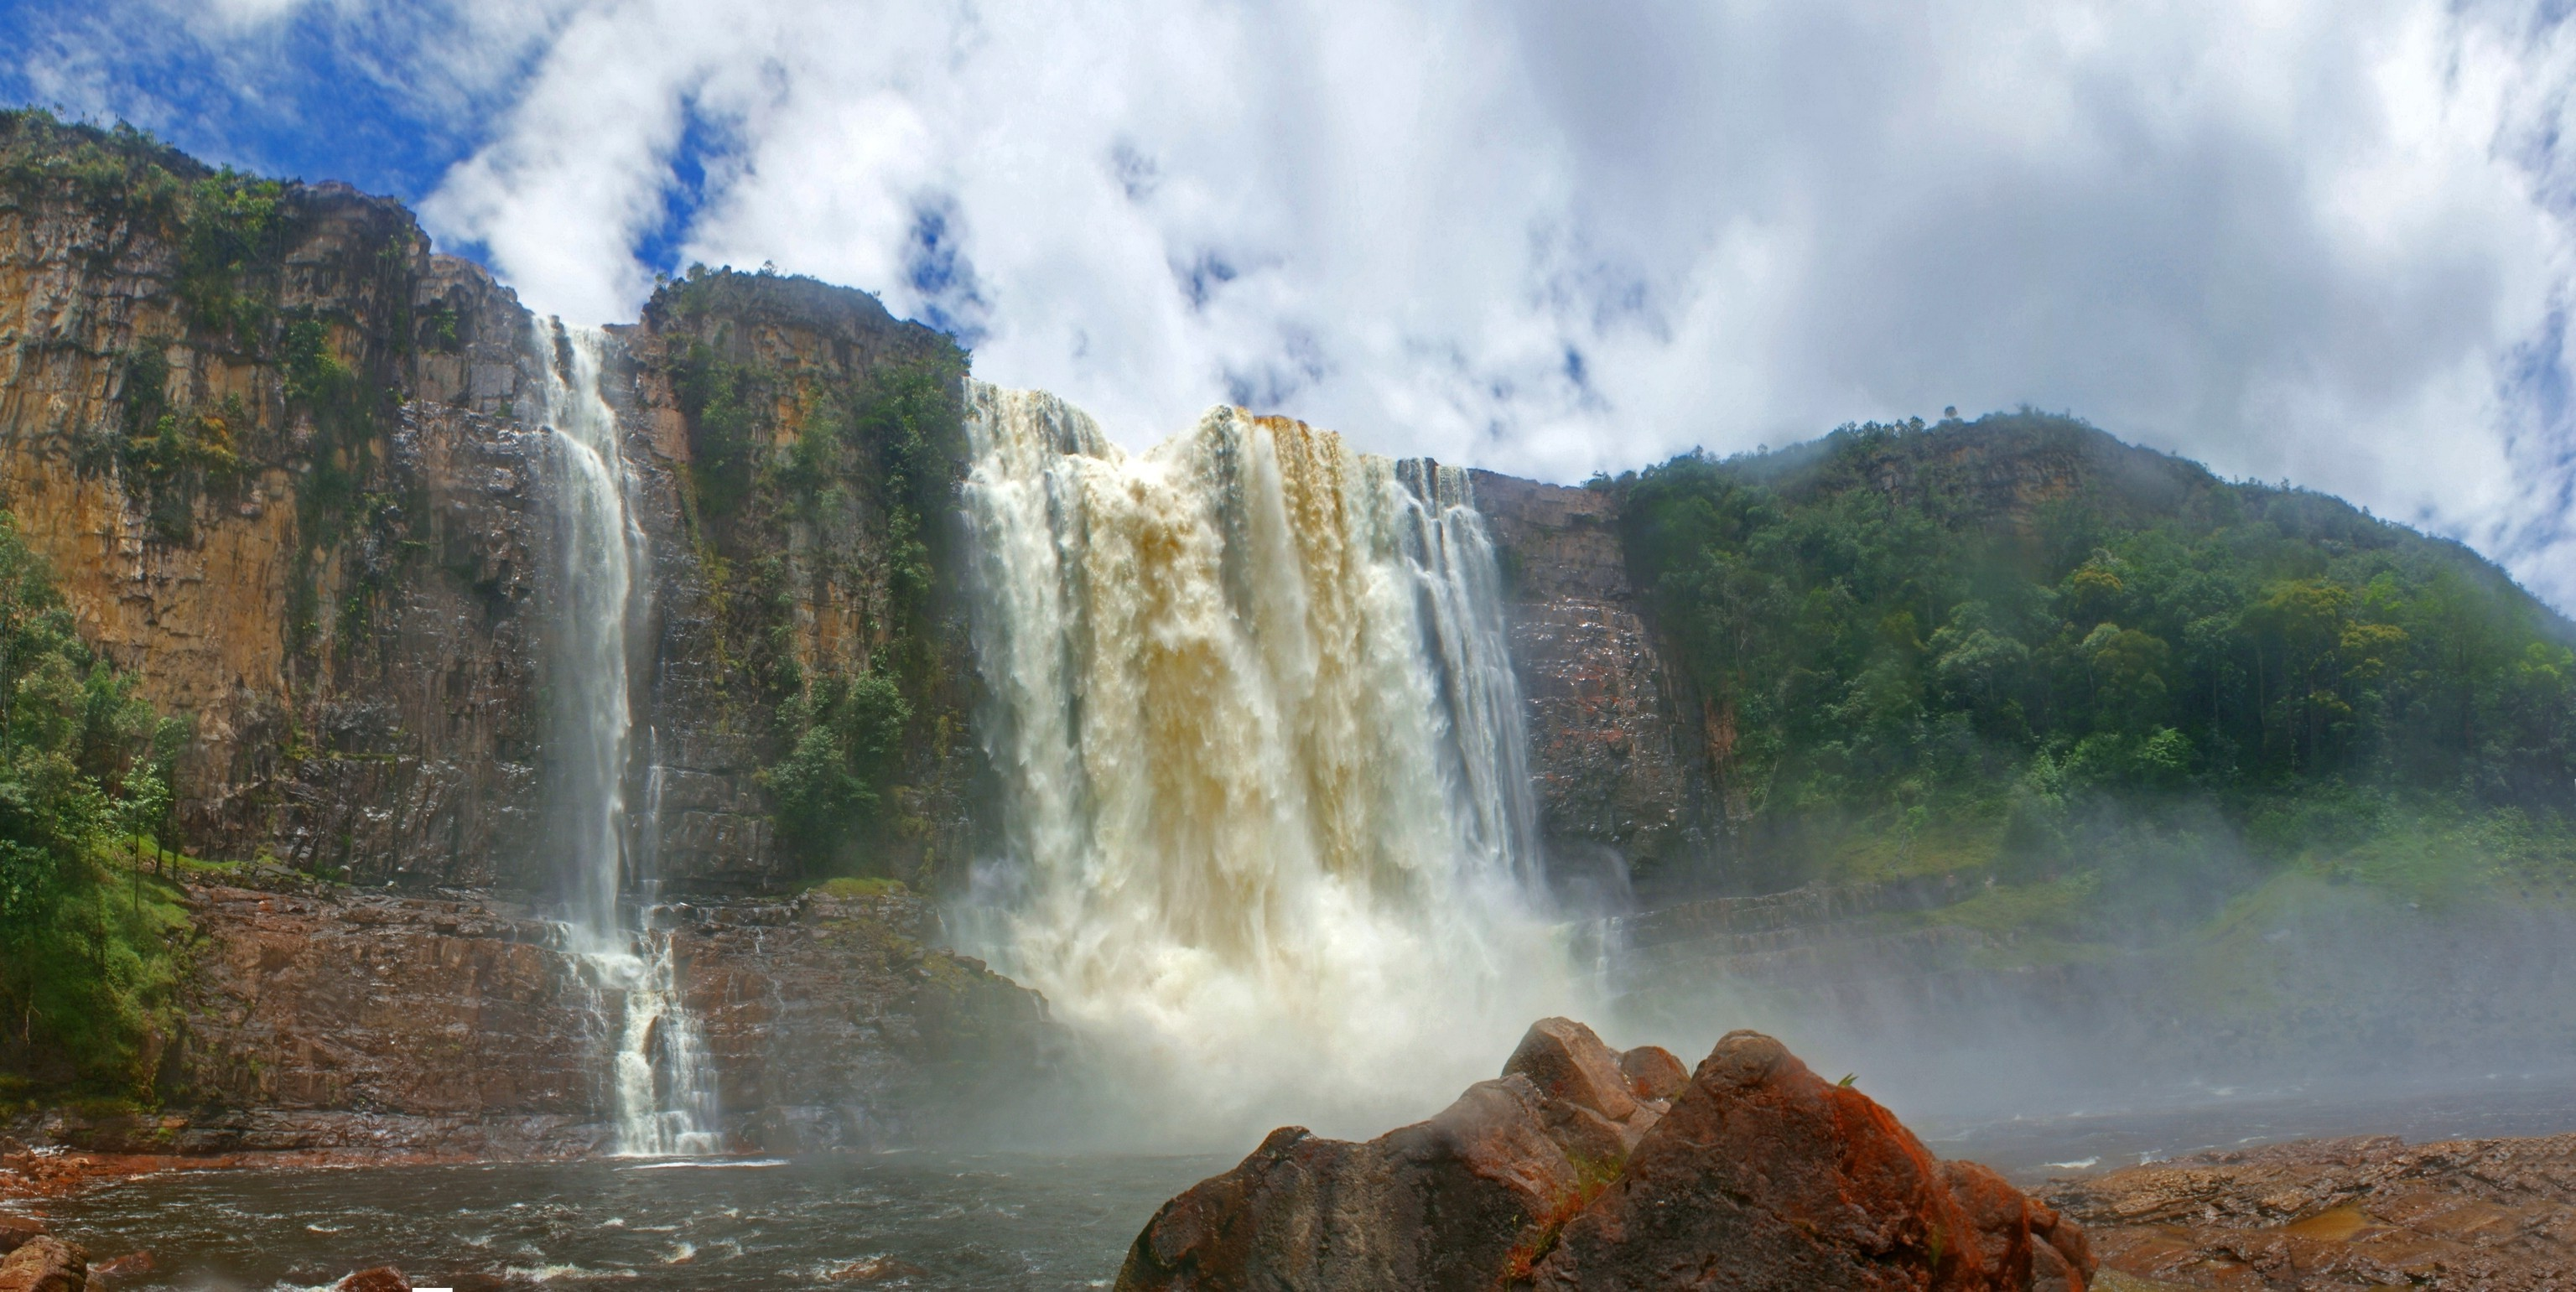 Res: 3072x1541, nature, Landscape, Canaima National Park, Venezuela, Waterfall, Cliff,  River, Tropical Forest, Clouds Wallpapers HD / Desktop and Mobile  Backgrounds